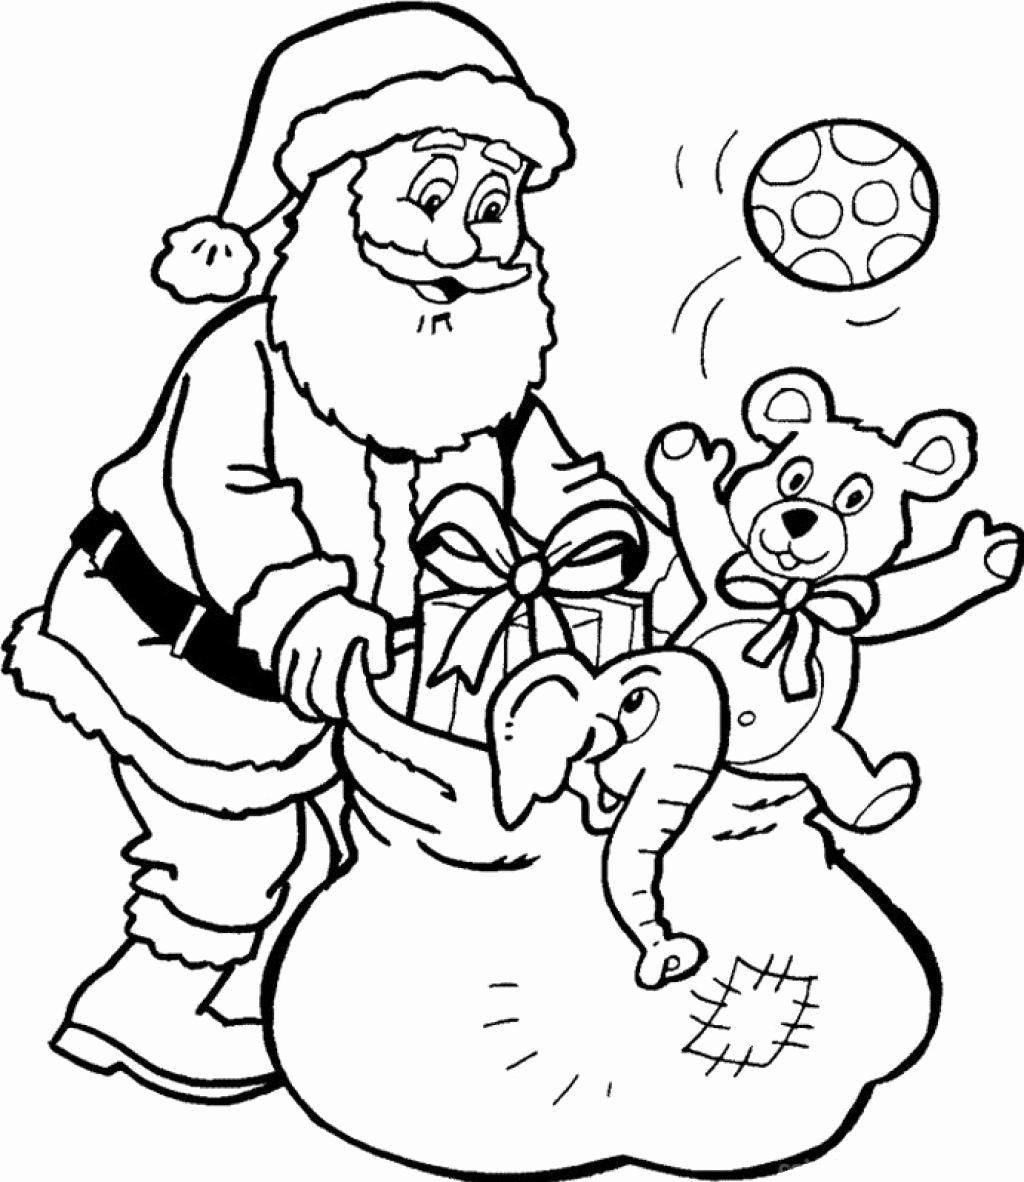 Colors Santa Claus Sleigh Coloring Pages Santa Clause Coloring Page Santa Cla Santa Coloring Pages Christmas Coloring Pages Printable Christmas Coloring Pages